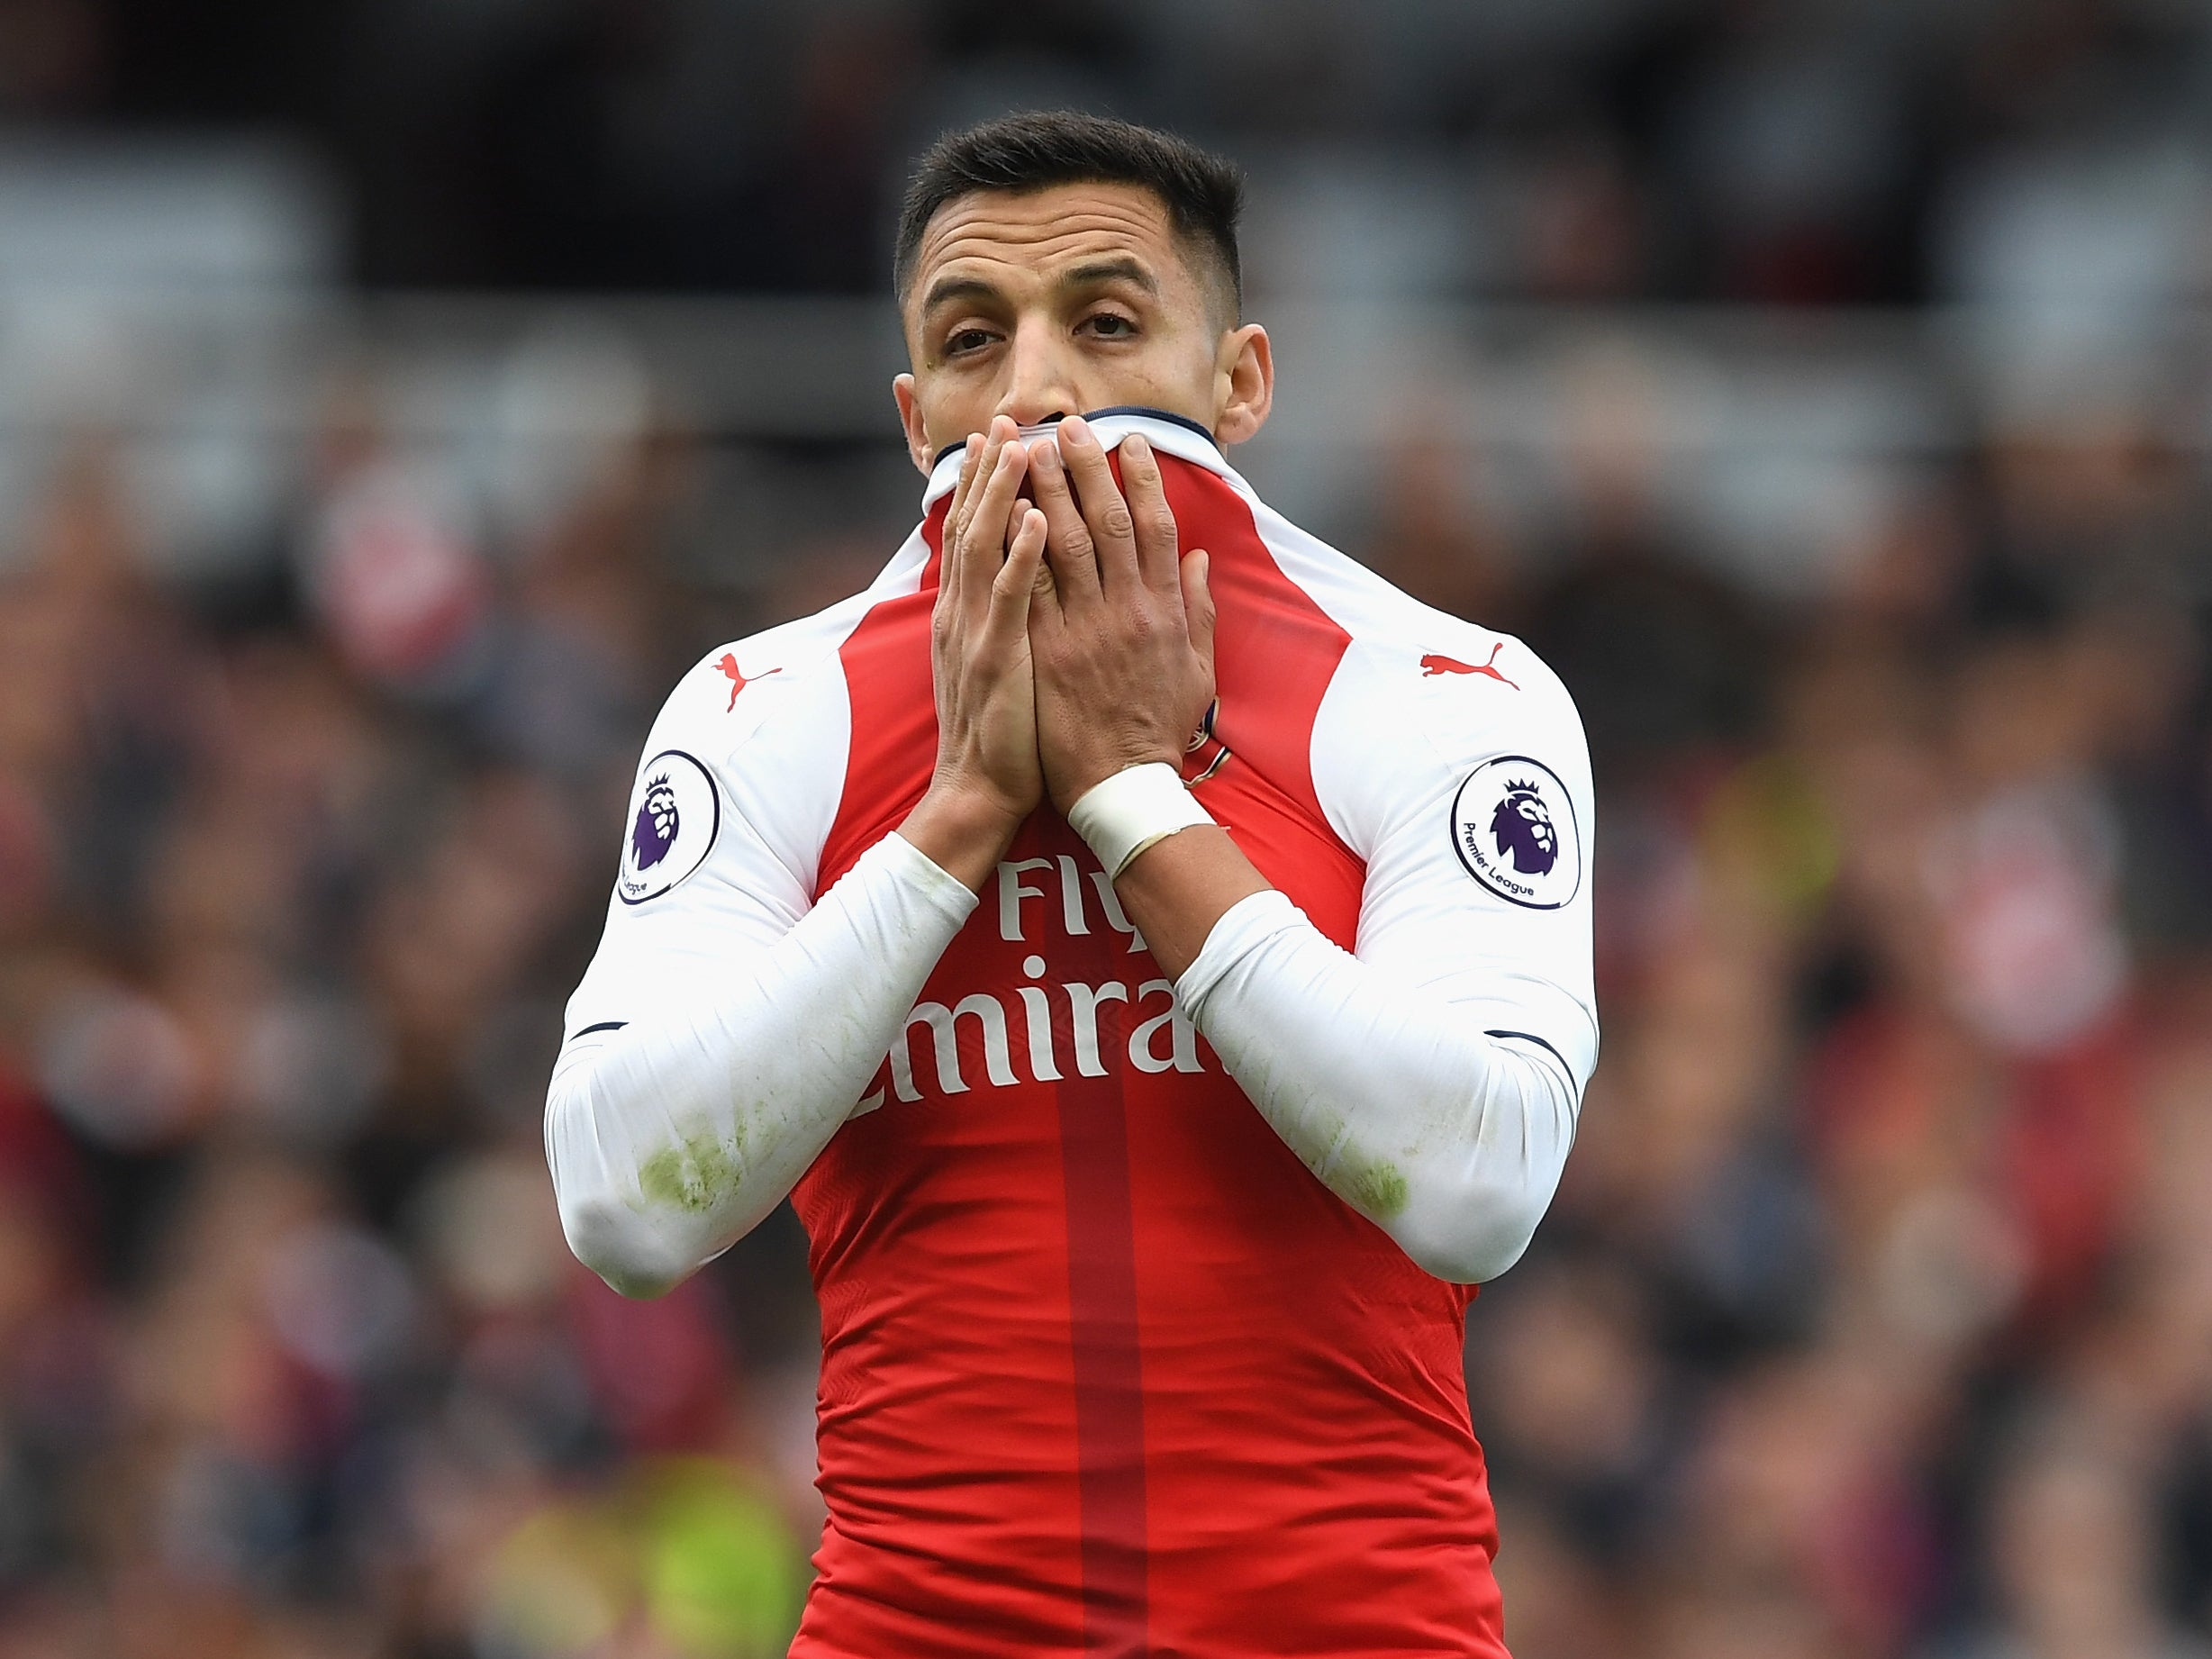 Arsene Wenger insists Alexis Sanchez has not asked to leave